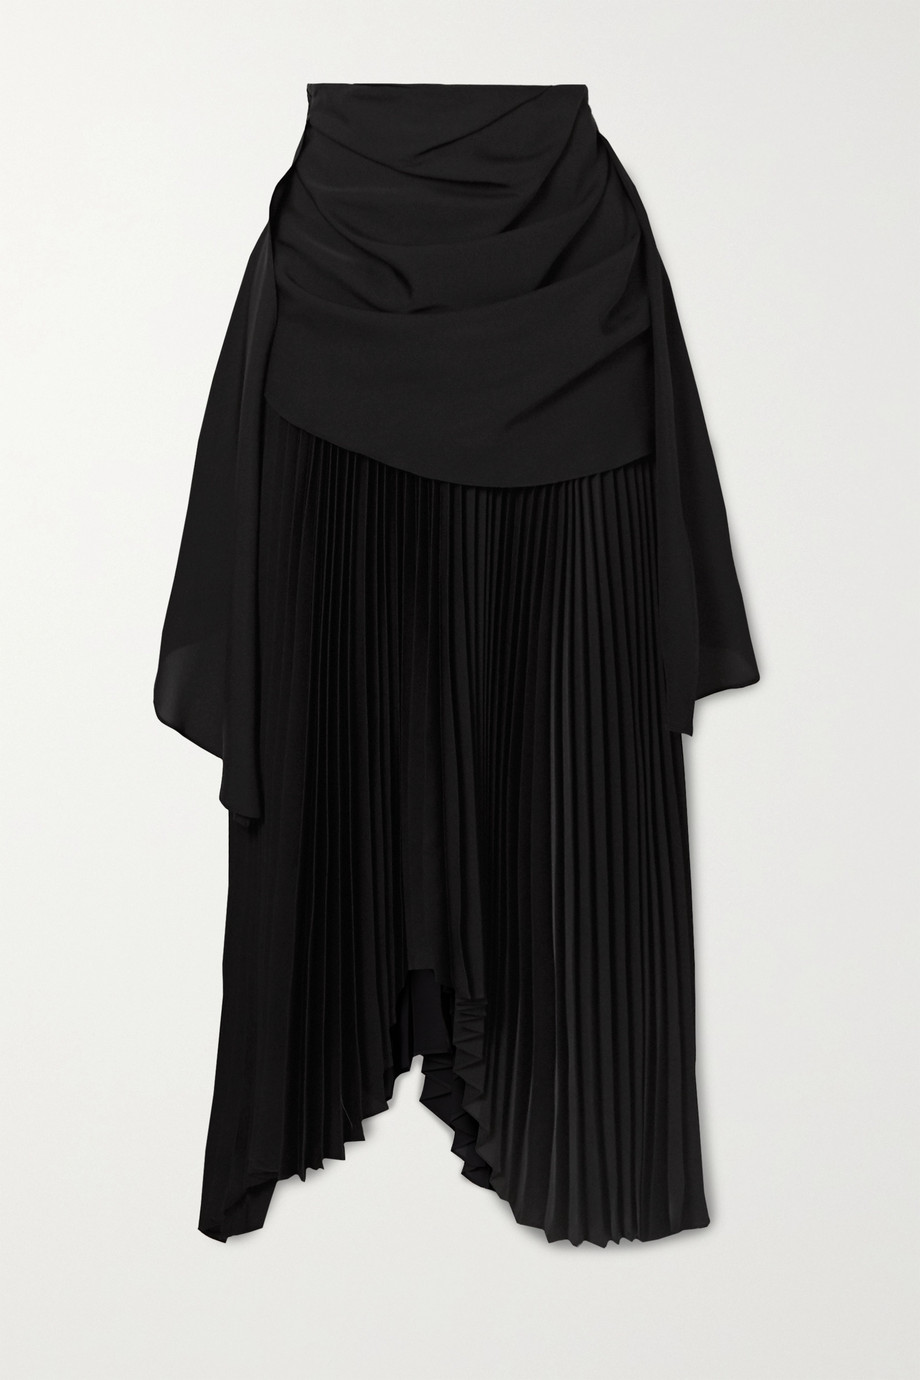 A.W.A.K.E. MODE Asymmetric draped pleated chiffon and crepe midi skirt